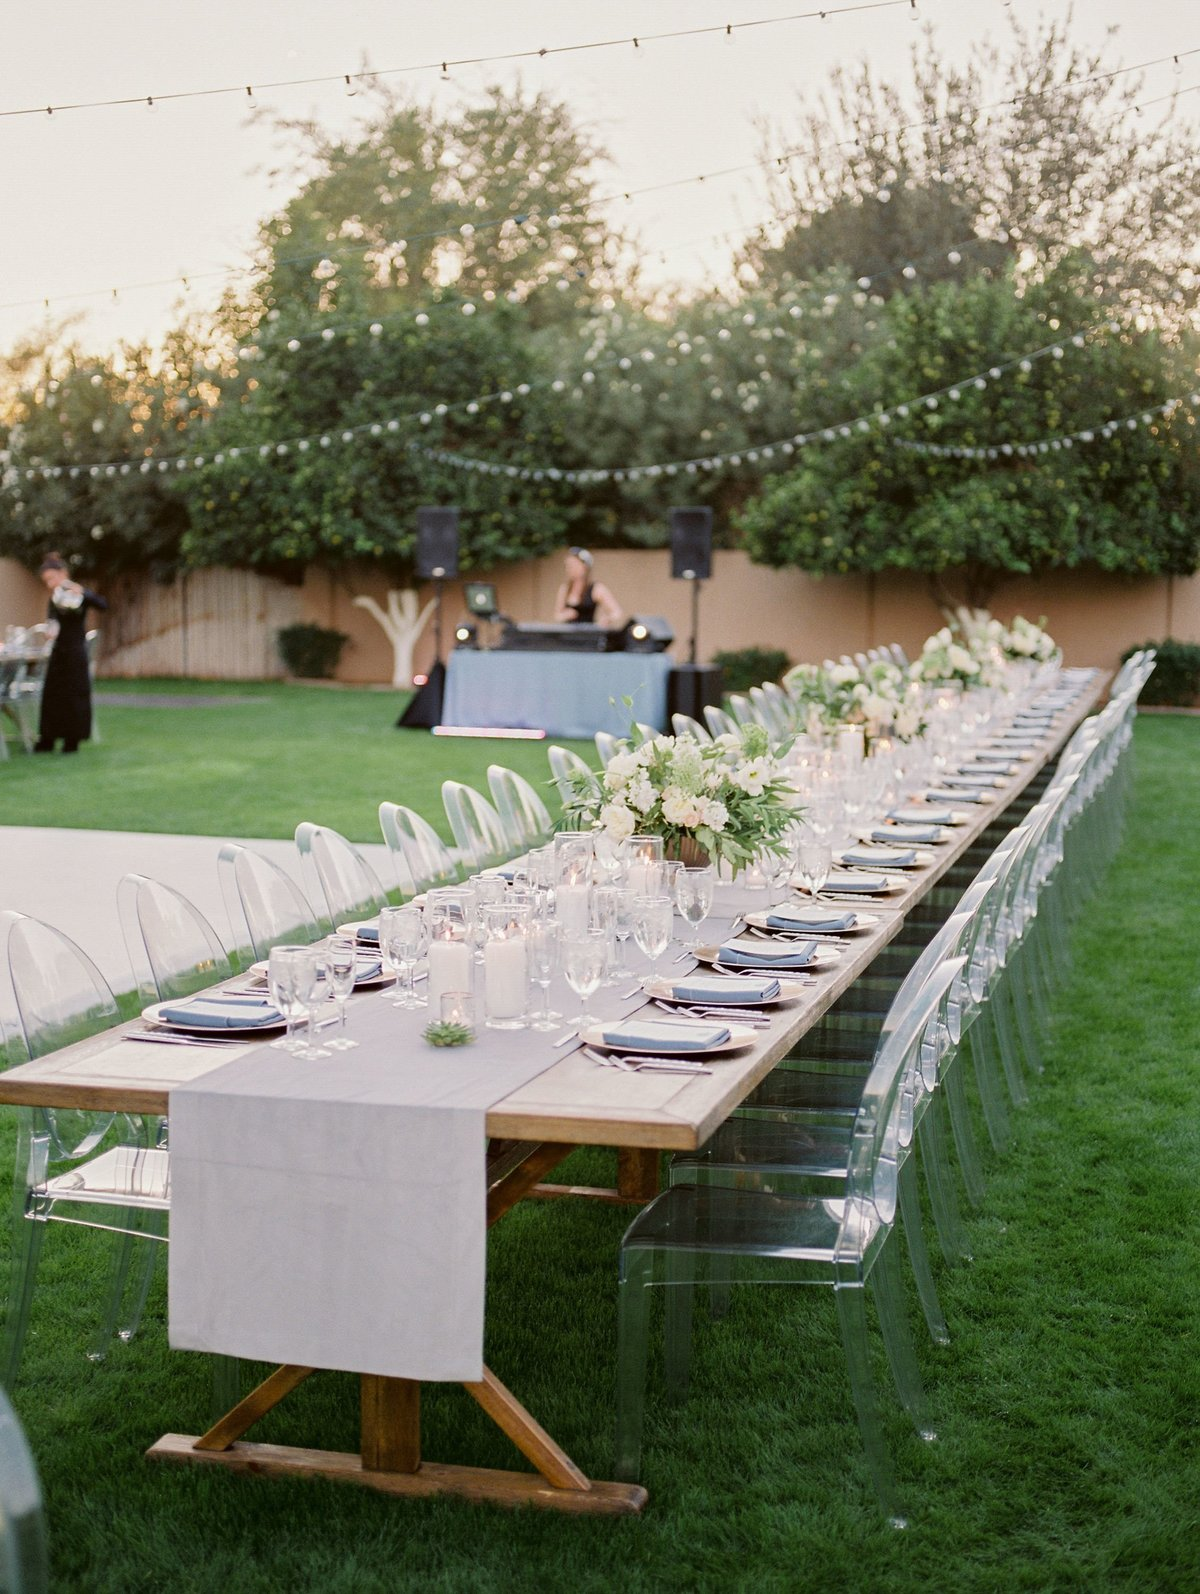 Imoni-Events-Charity-Maurer-Scottsdale-Private-Residence_0035